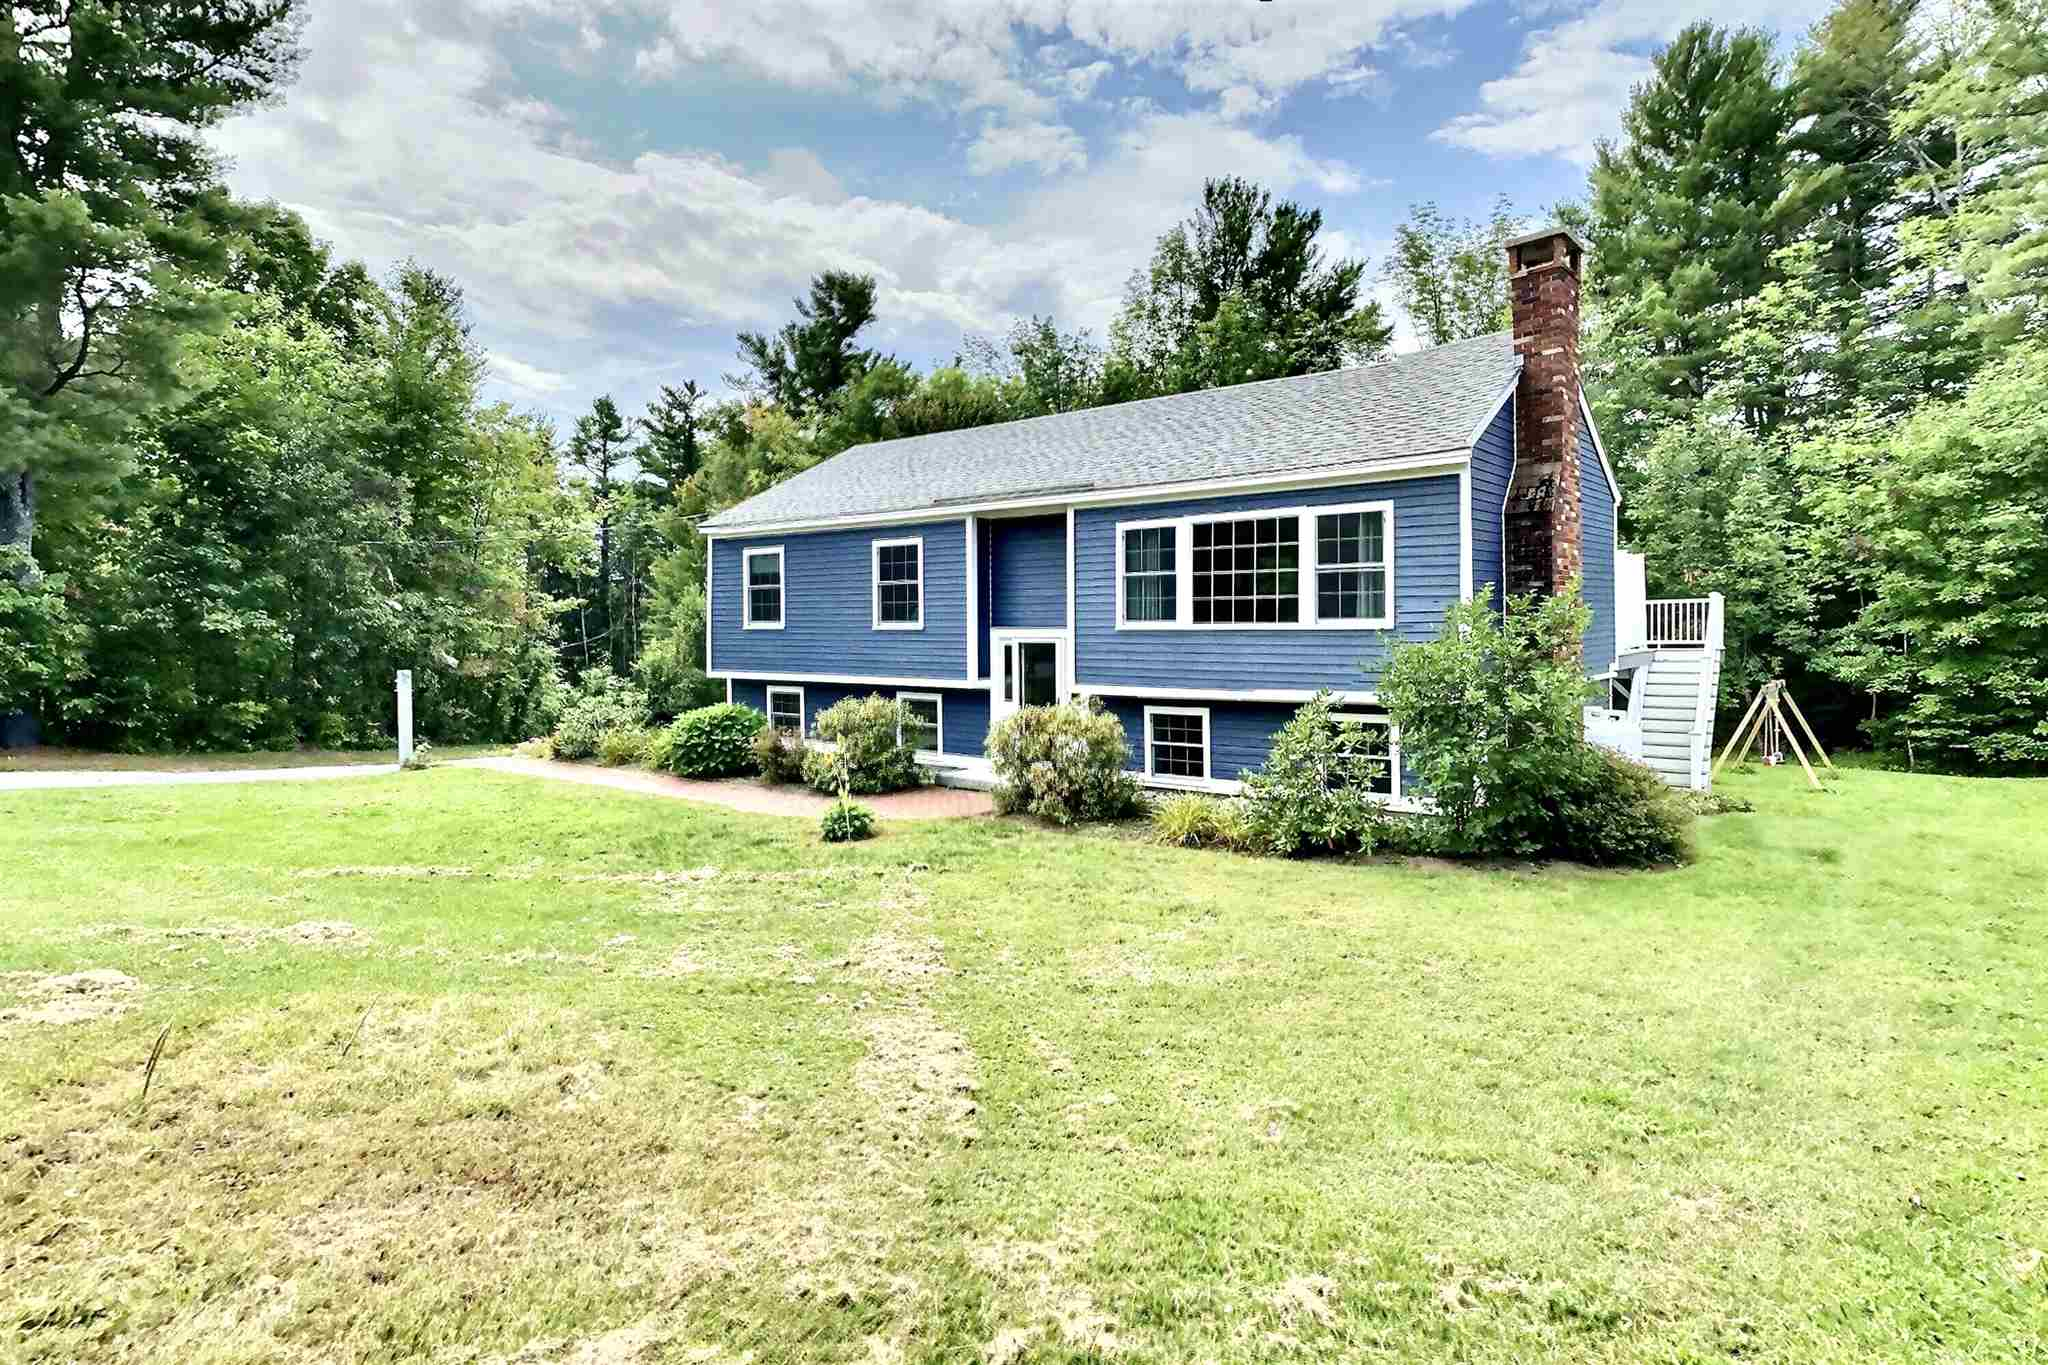 MLS 4828357: 84 Everett Park Road, New London NH